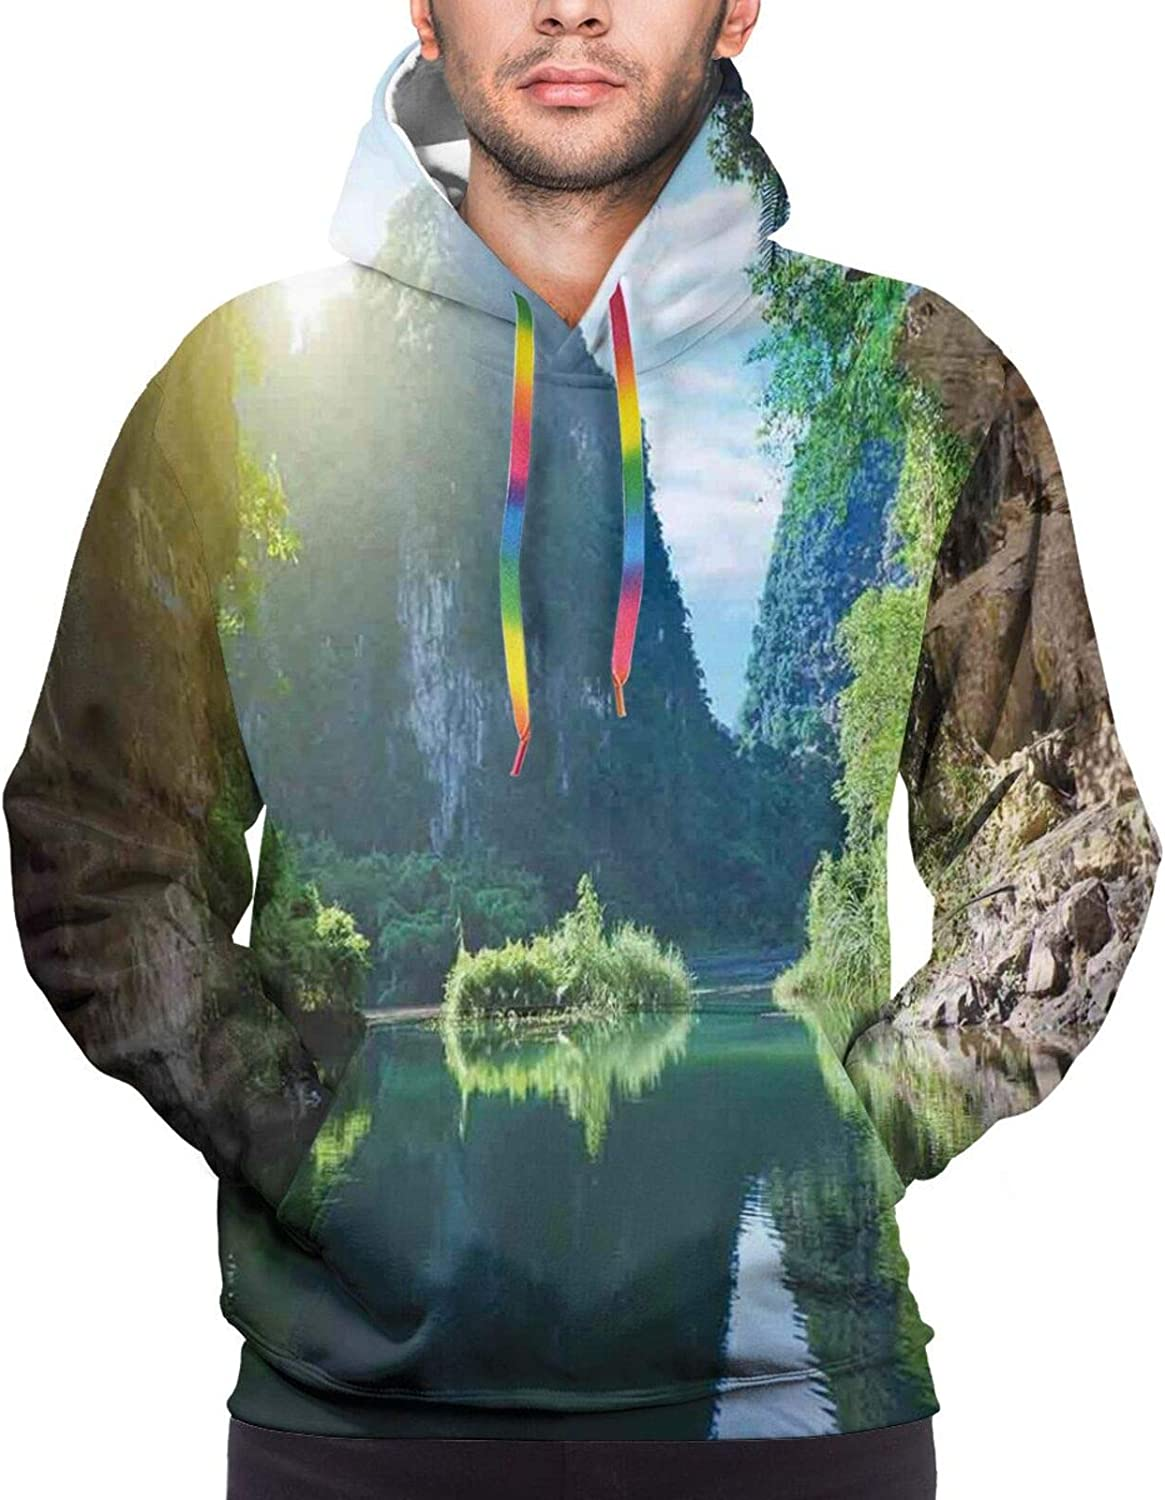 TENJONE Men's Hoodies Sweatshirts,Mountain Scenery with Lonely Pine Tree River and Hills at The Back